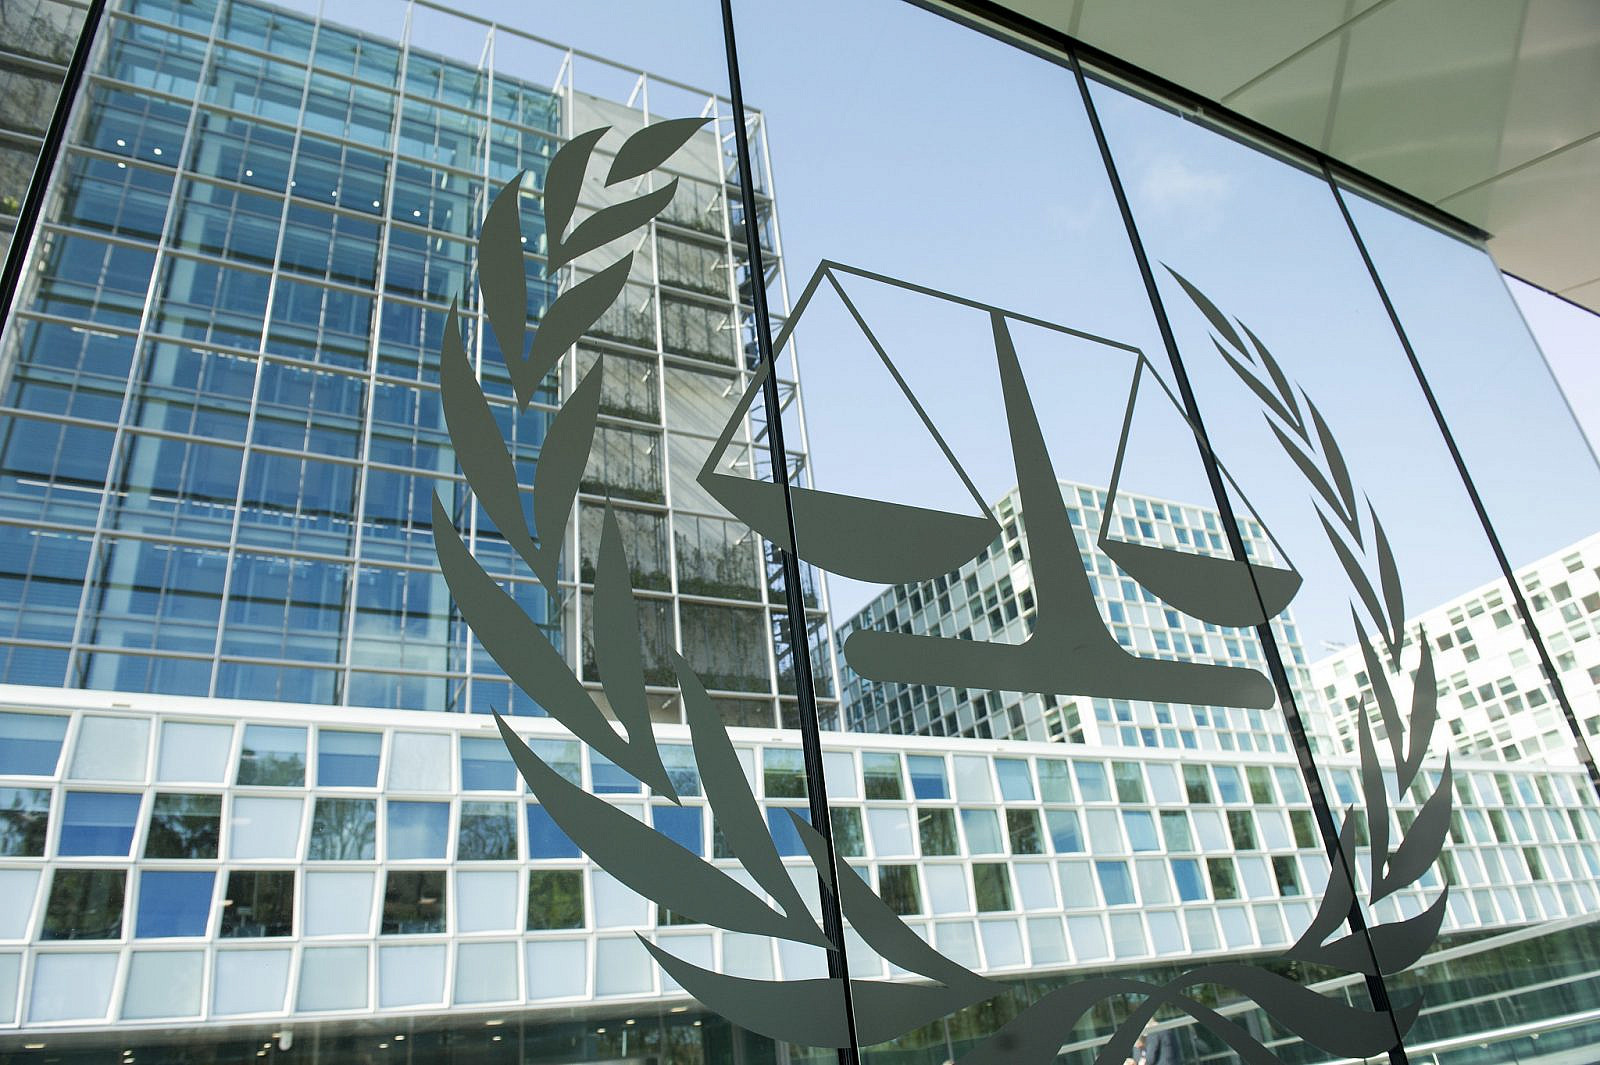 Official Opening of the Permanent Premises of the International Criminal Court, April 19, 2016. (UN Photo/Rick Bajornas)